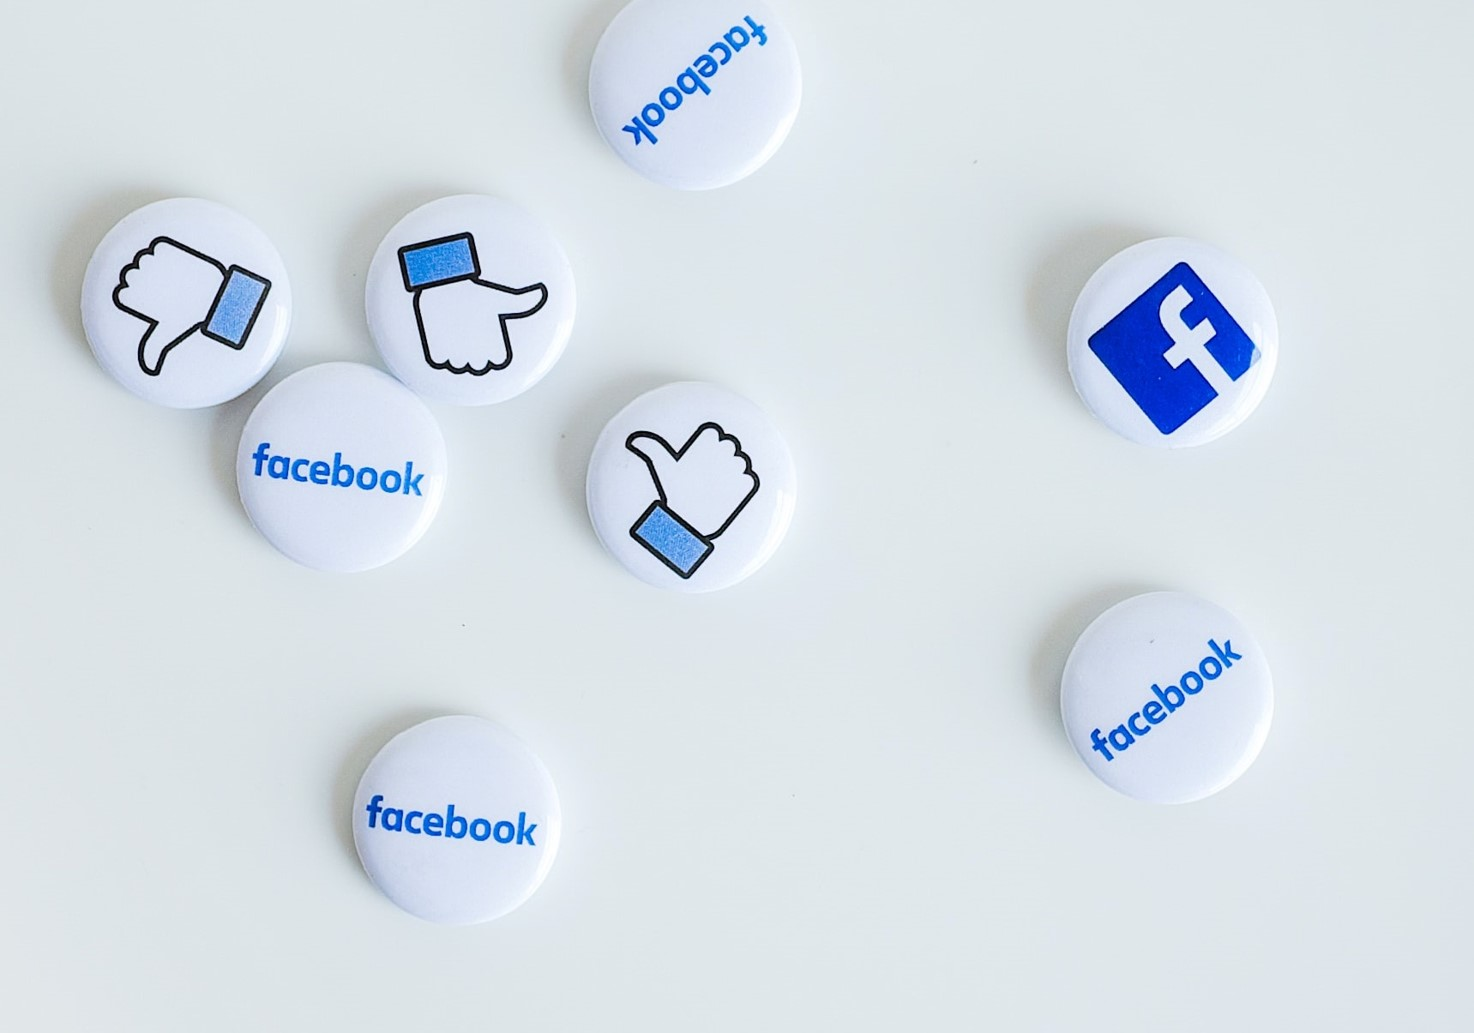 facebook icon pins badges scattered on white surface